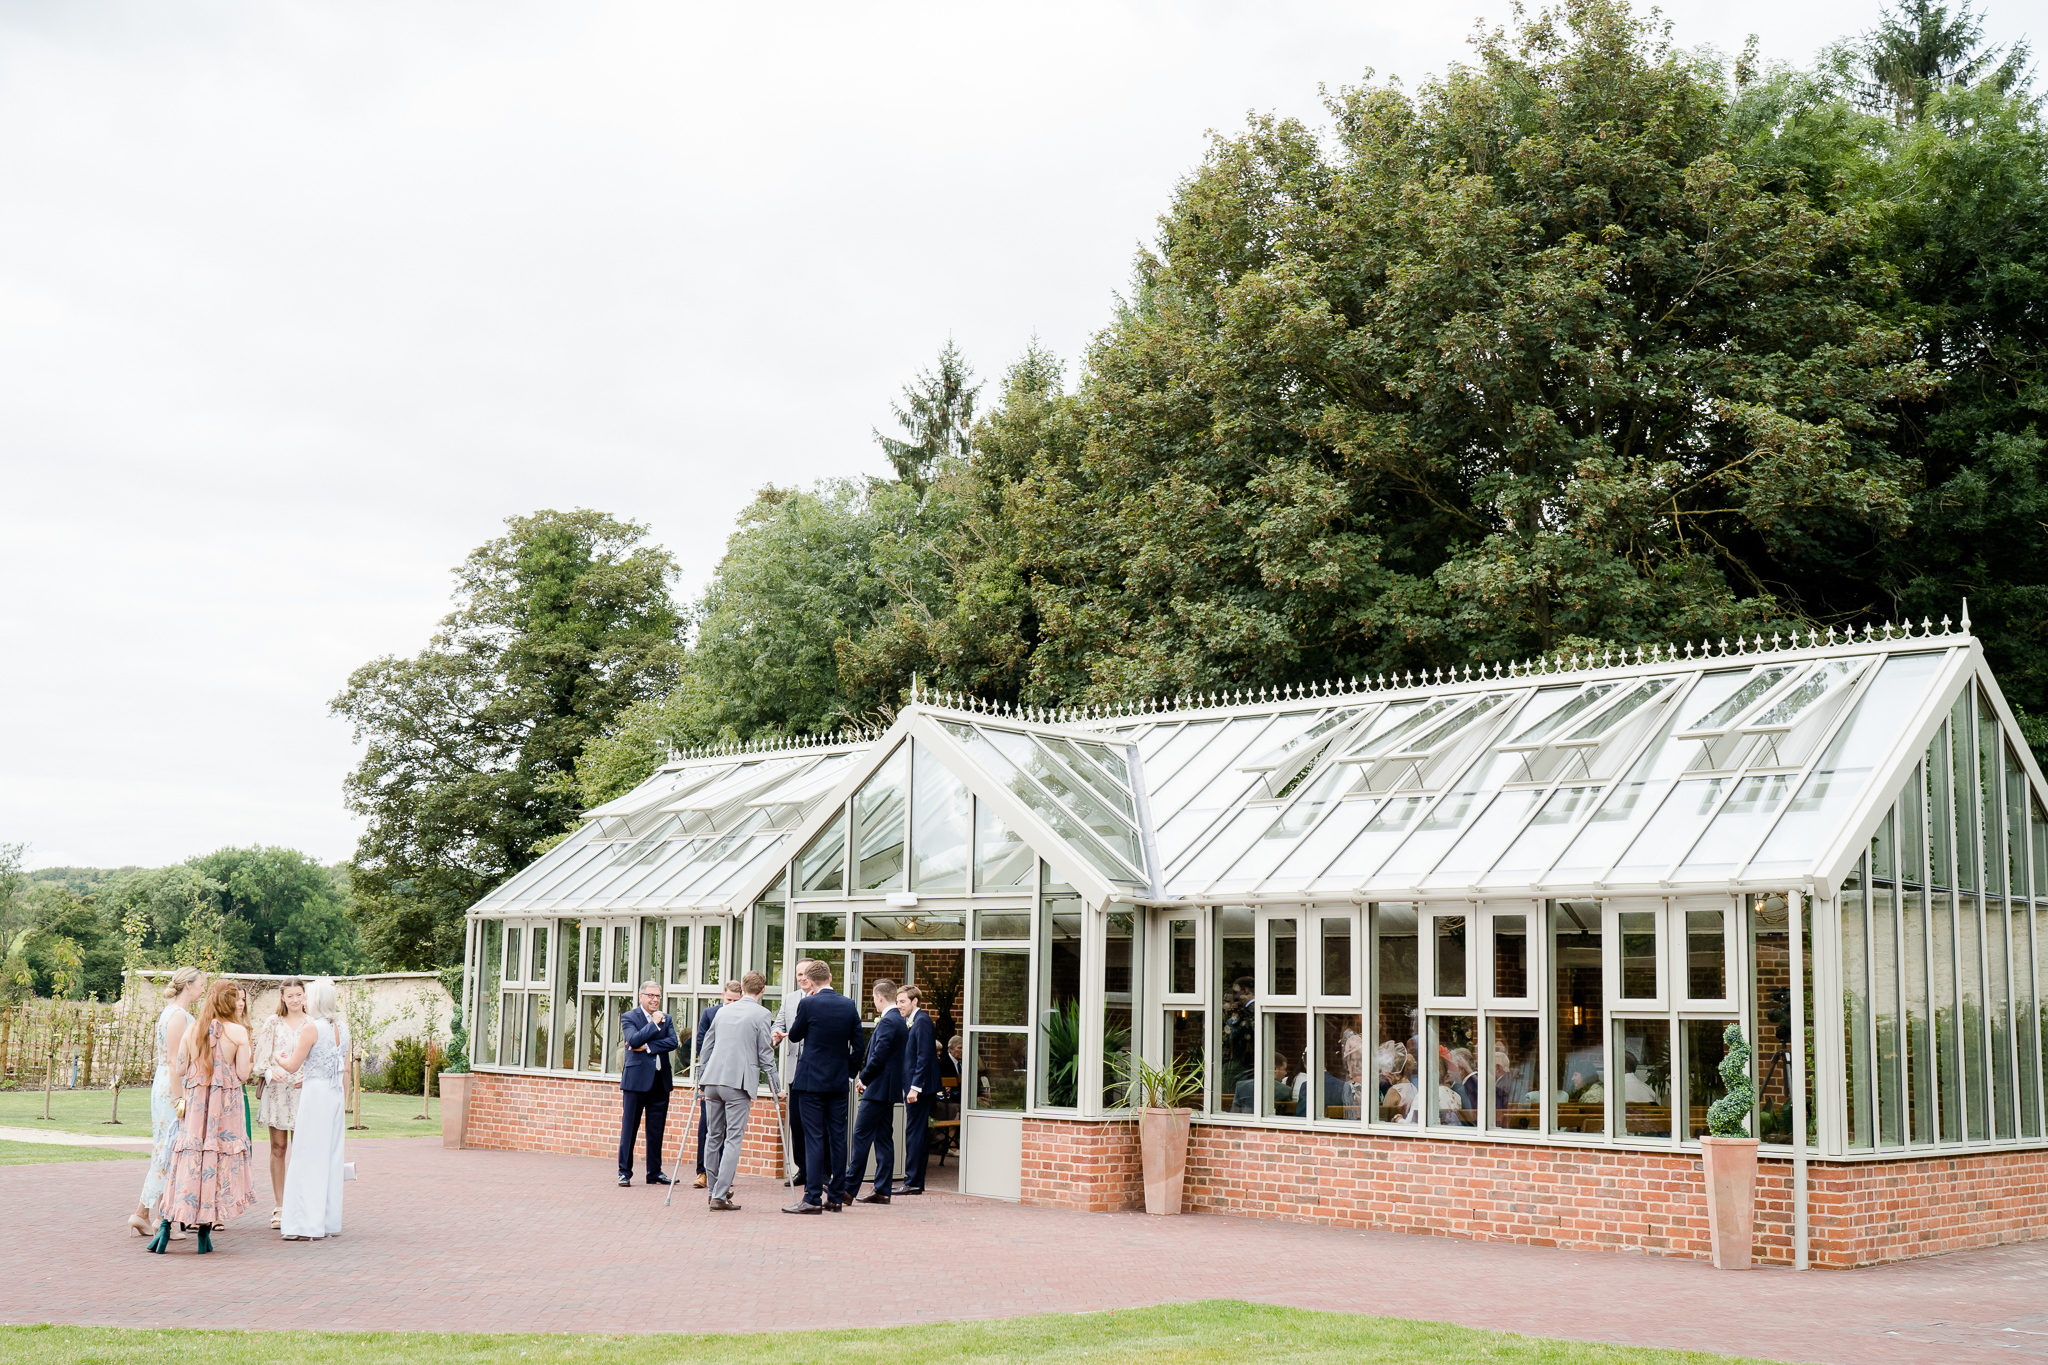 the glasshouse ceremony area at Syrencot Wiltshire